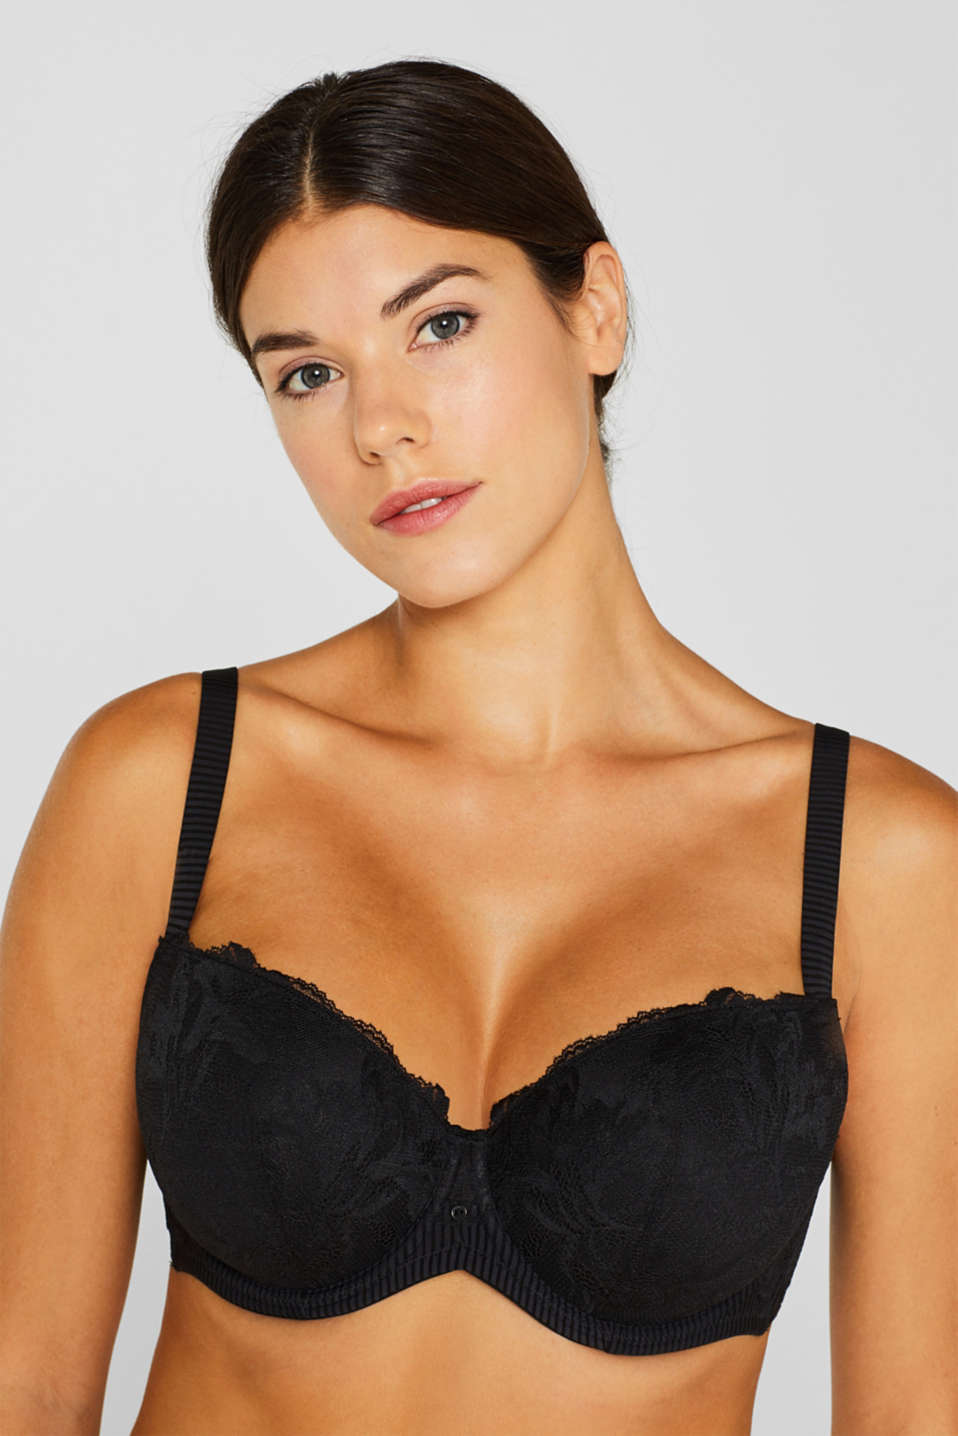 Padded lace bra for larger cup sizes, BLACK, detail image number 2